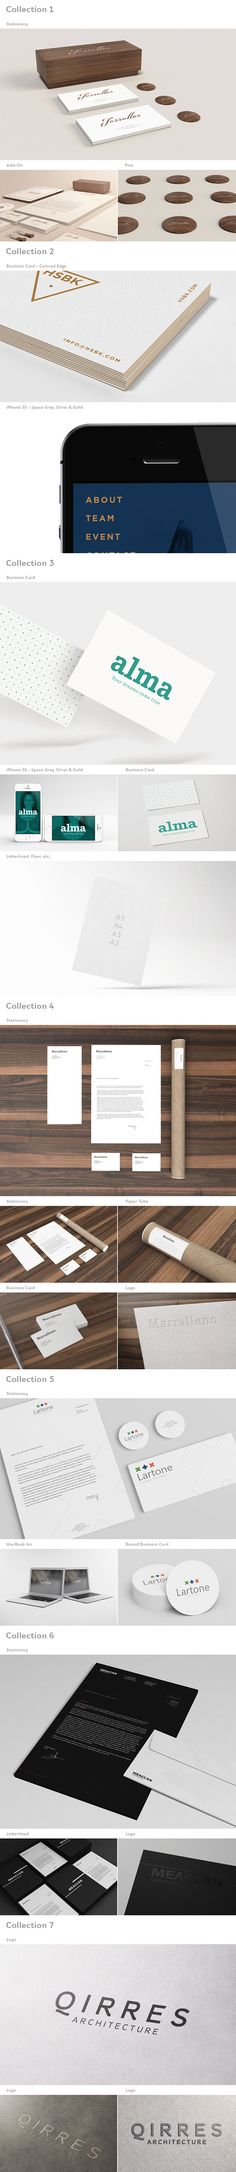 Latest Later Head1 - Stationery Print Templates Resource